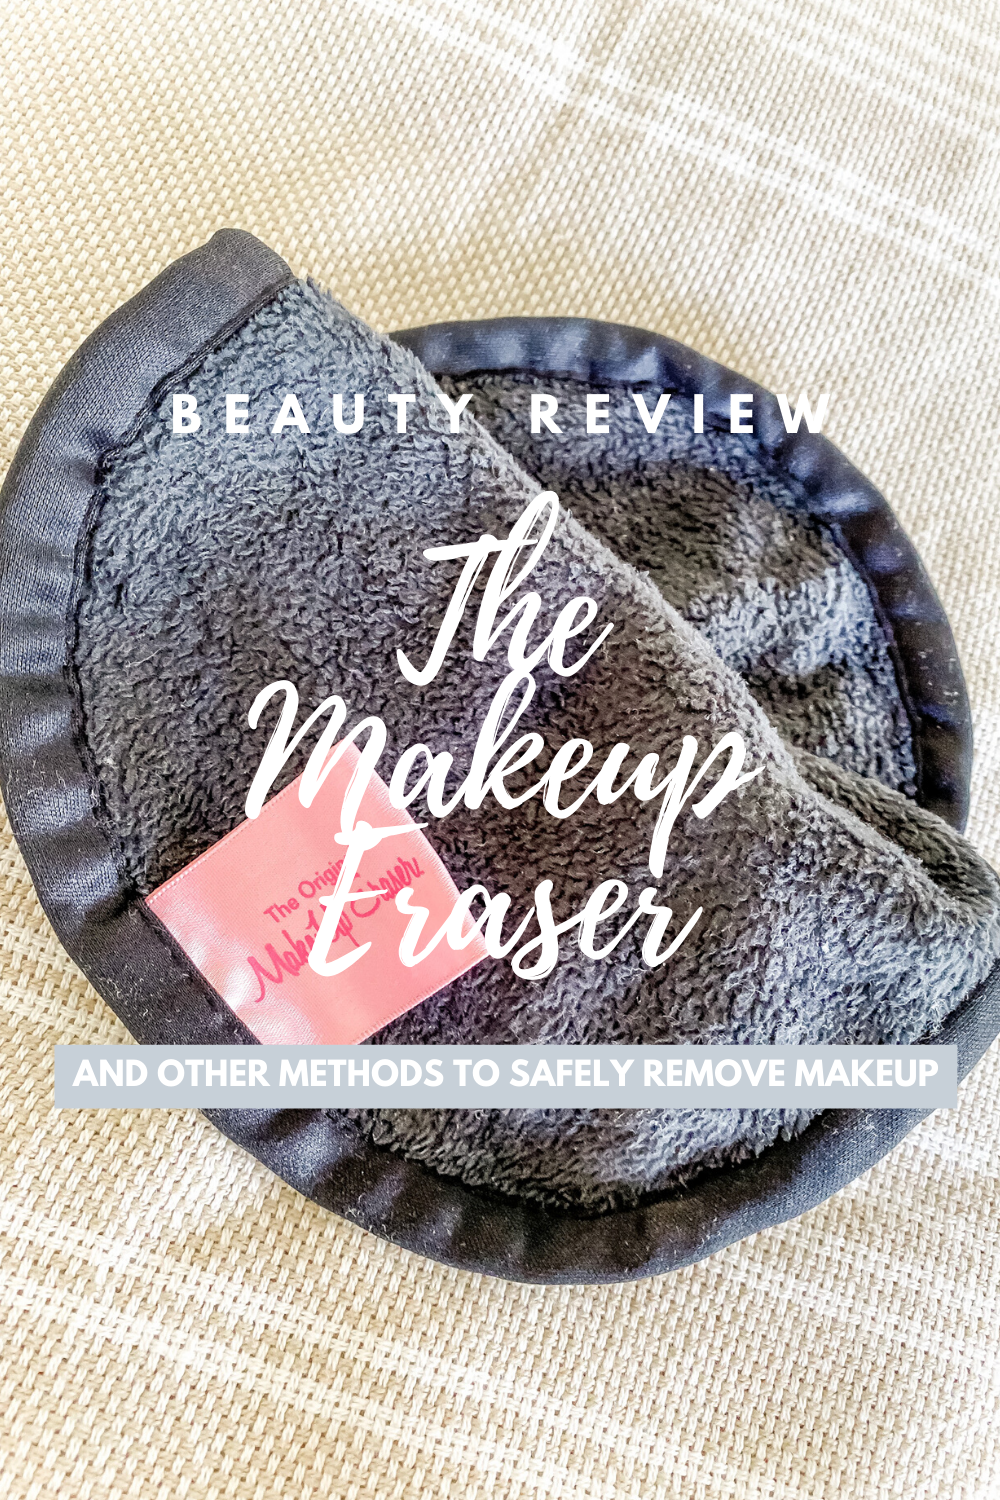 Beauty product review of The Makeup Eraser, and other safe